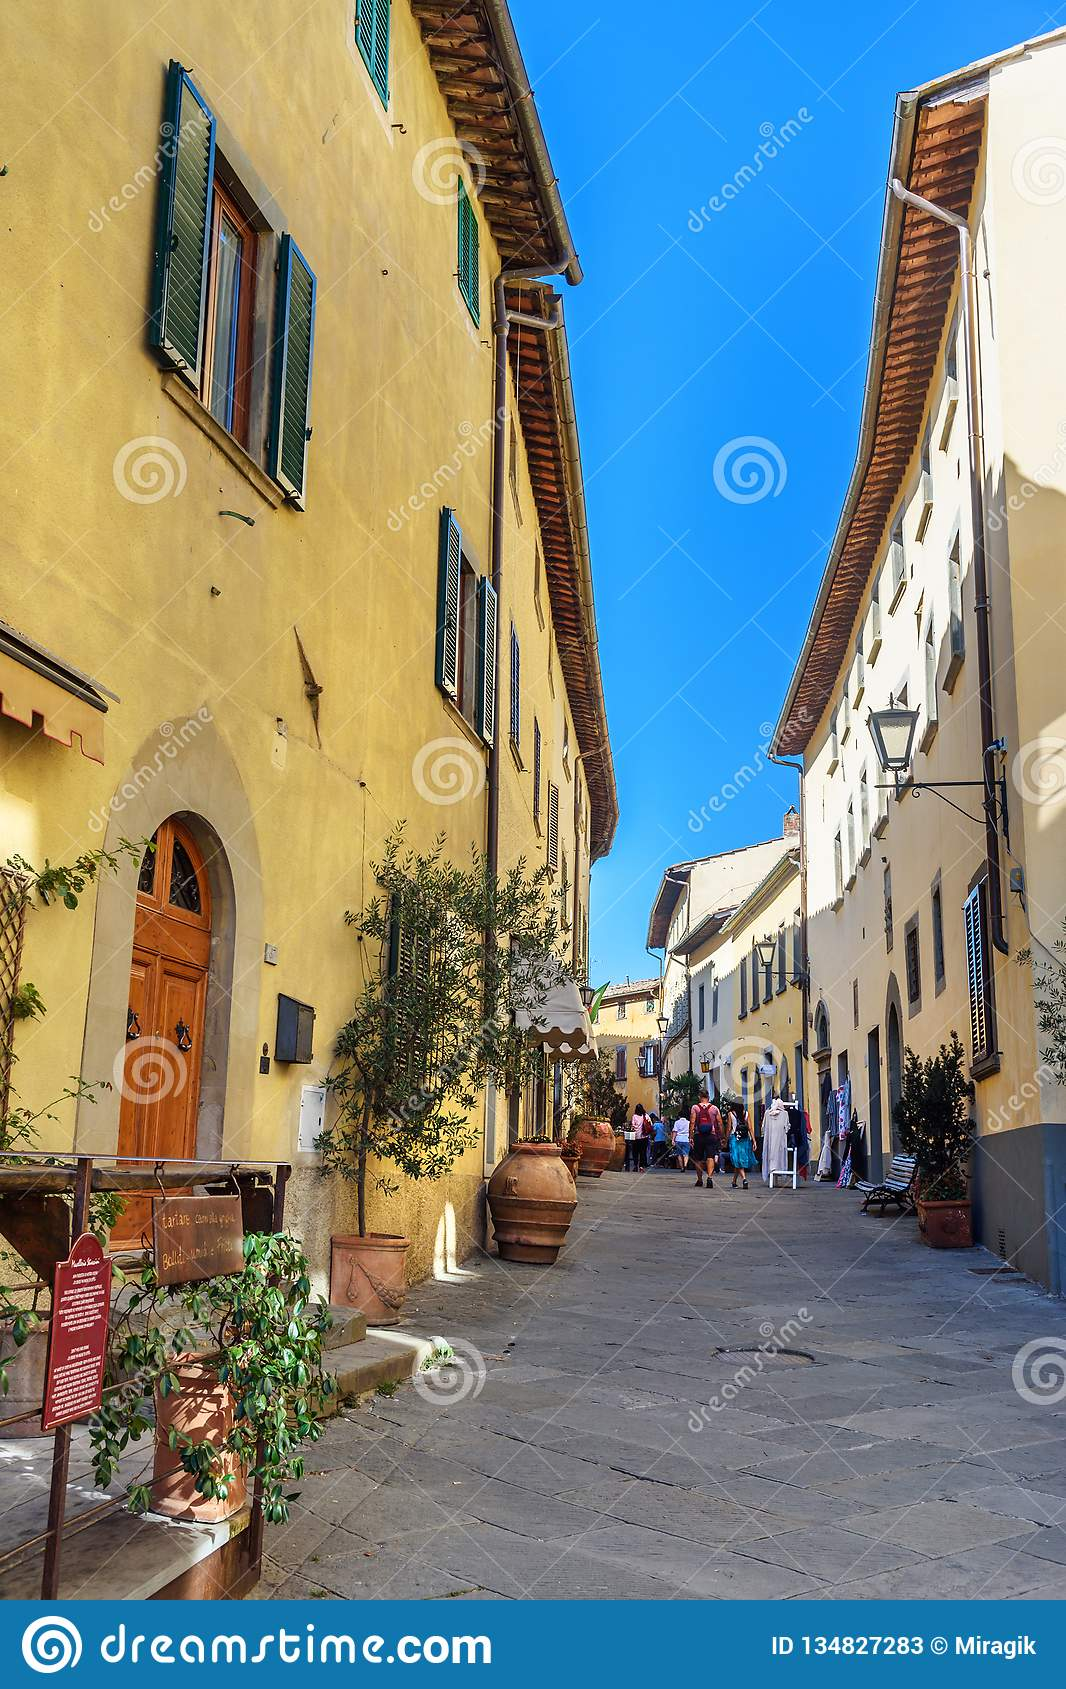 On the street in old medieval village Castellina in Chianti. Tuscany. Italy